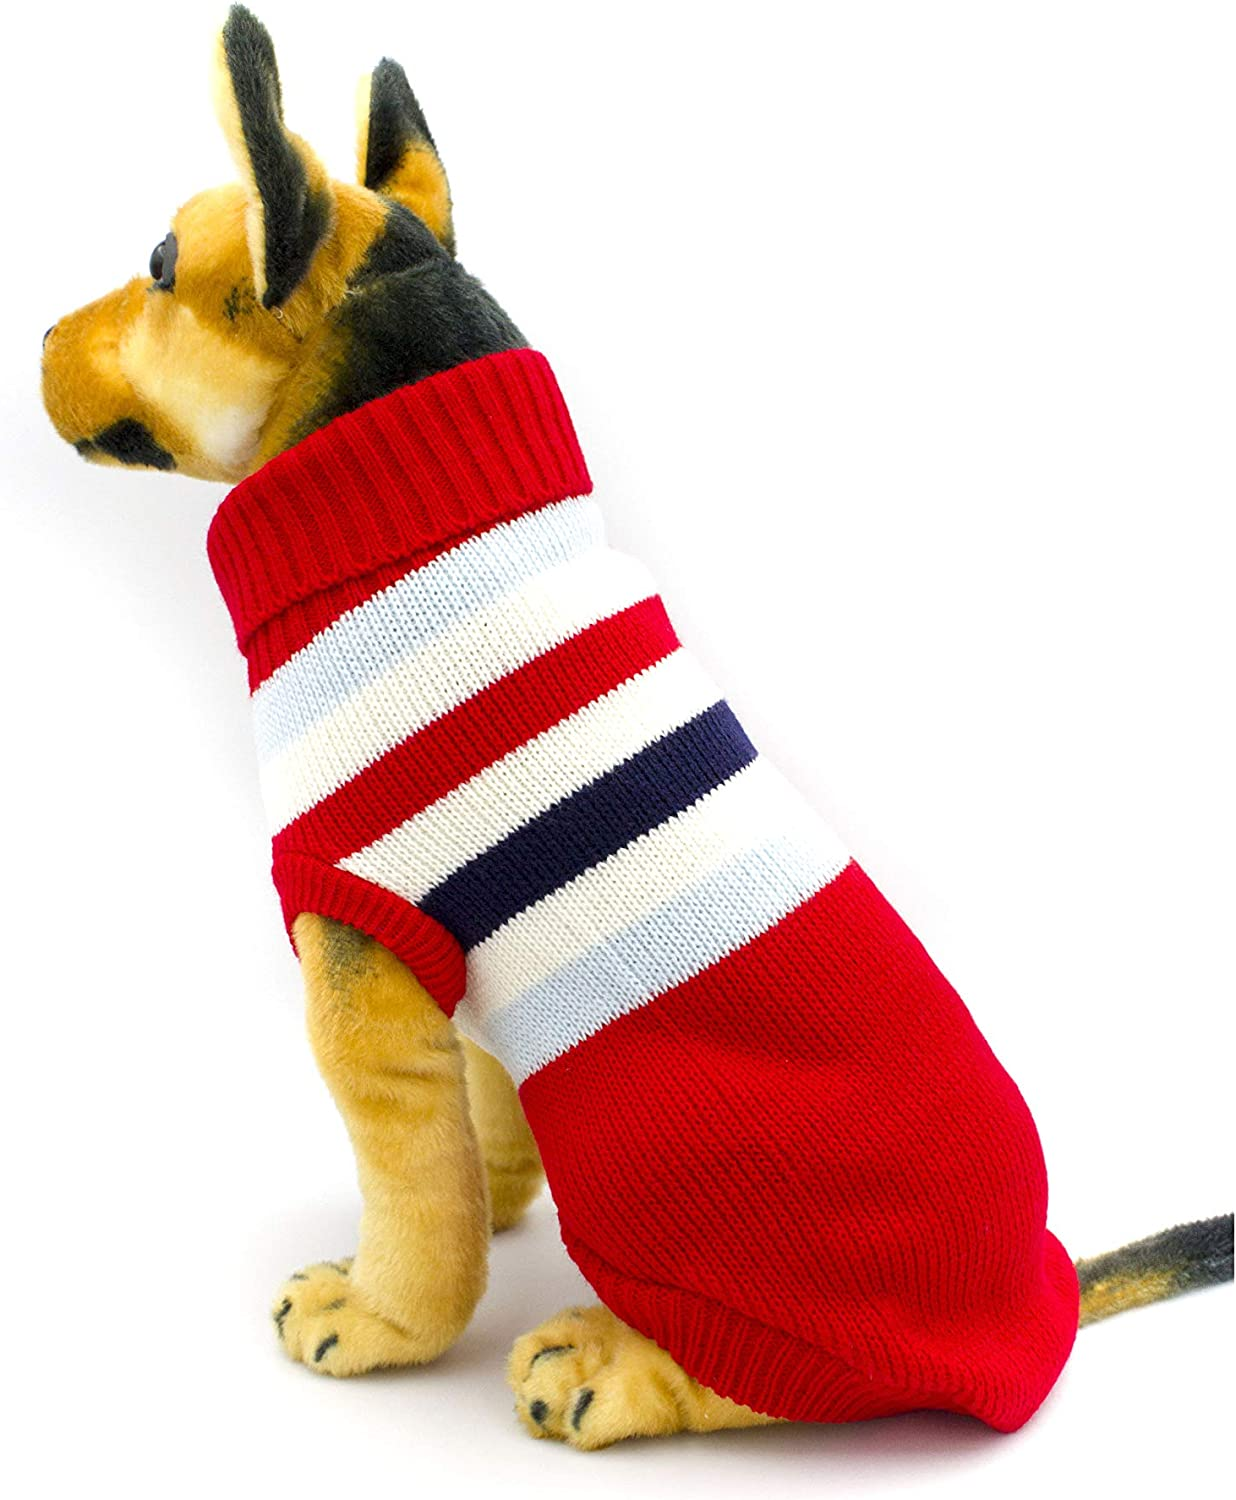 AXEL PETS Elegant Stripes Knit Turtleneck Winter Warm Sweater for Dog and Puppy (Small, Red)